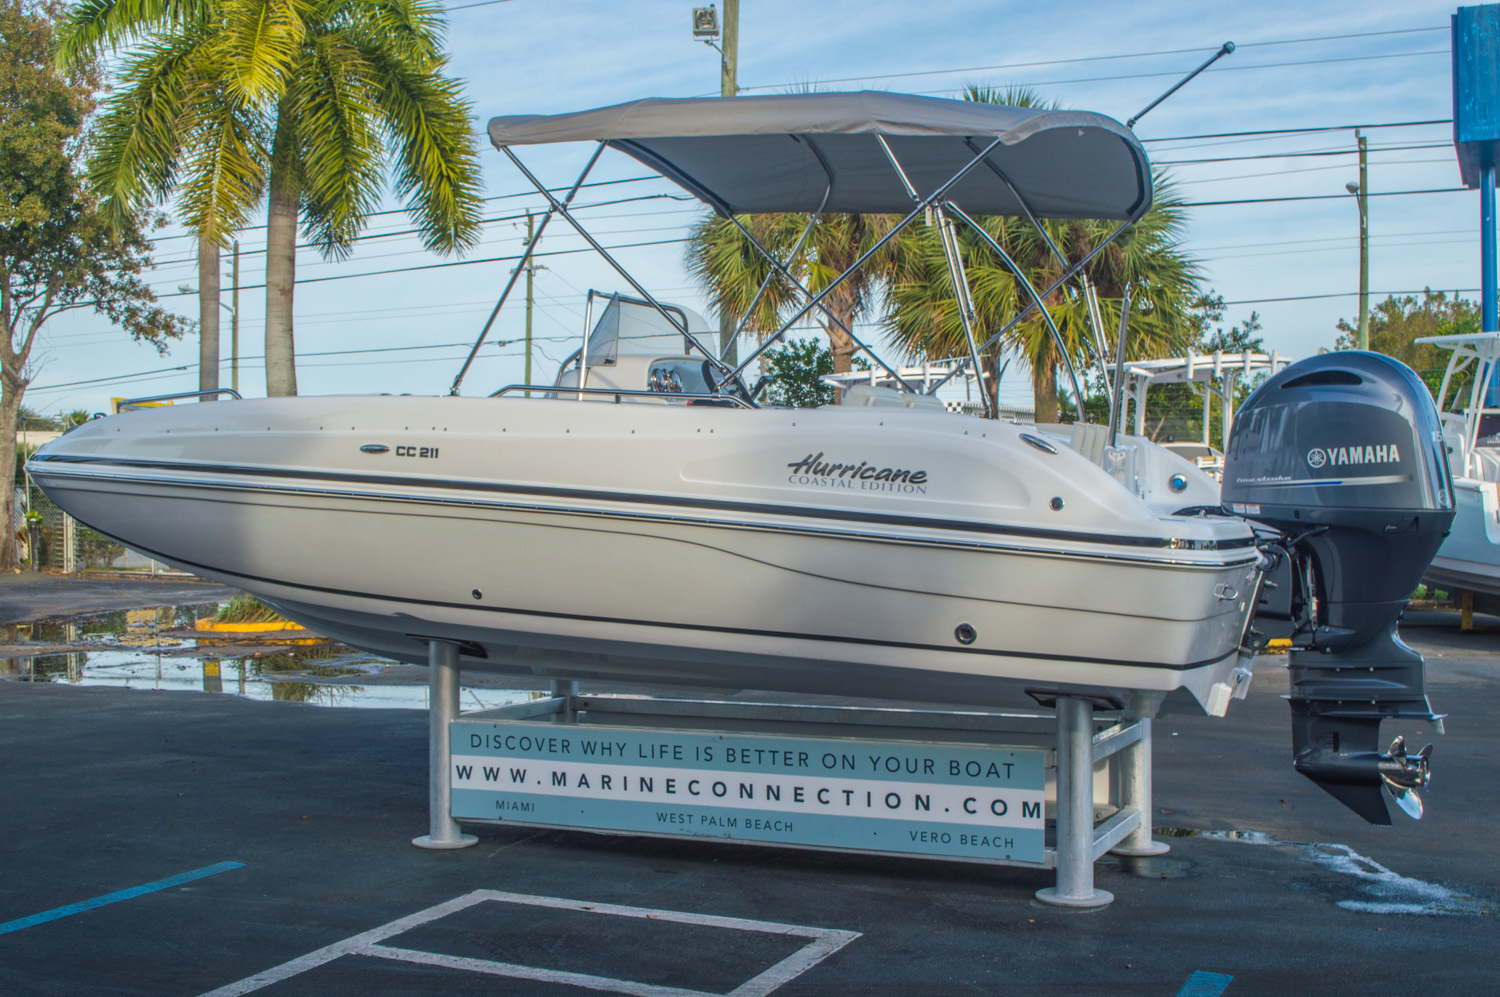 Thumbnail 5 for New 2016 Hurricane CC211 Center Consle boat for sale in West Palm Beach, FL